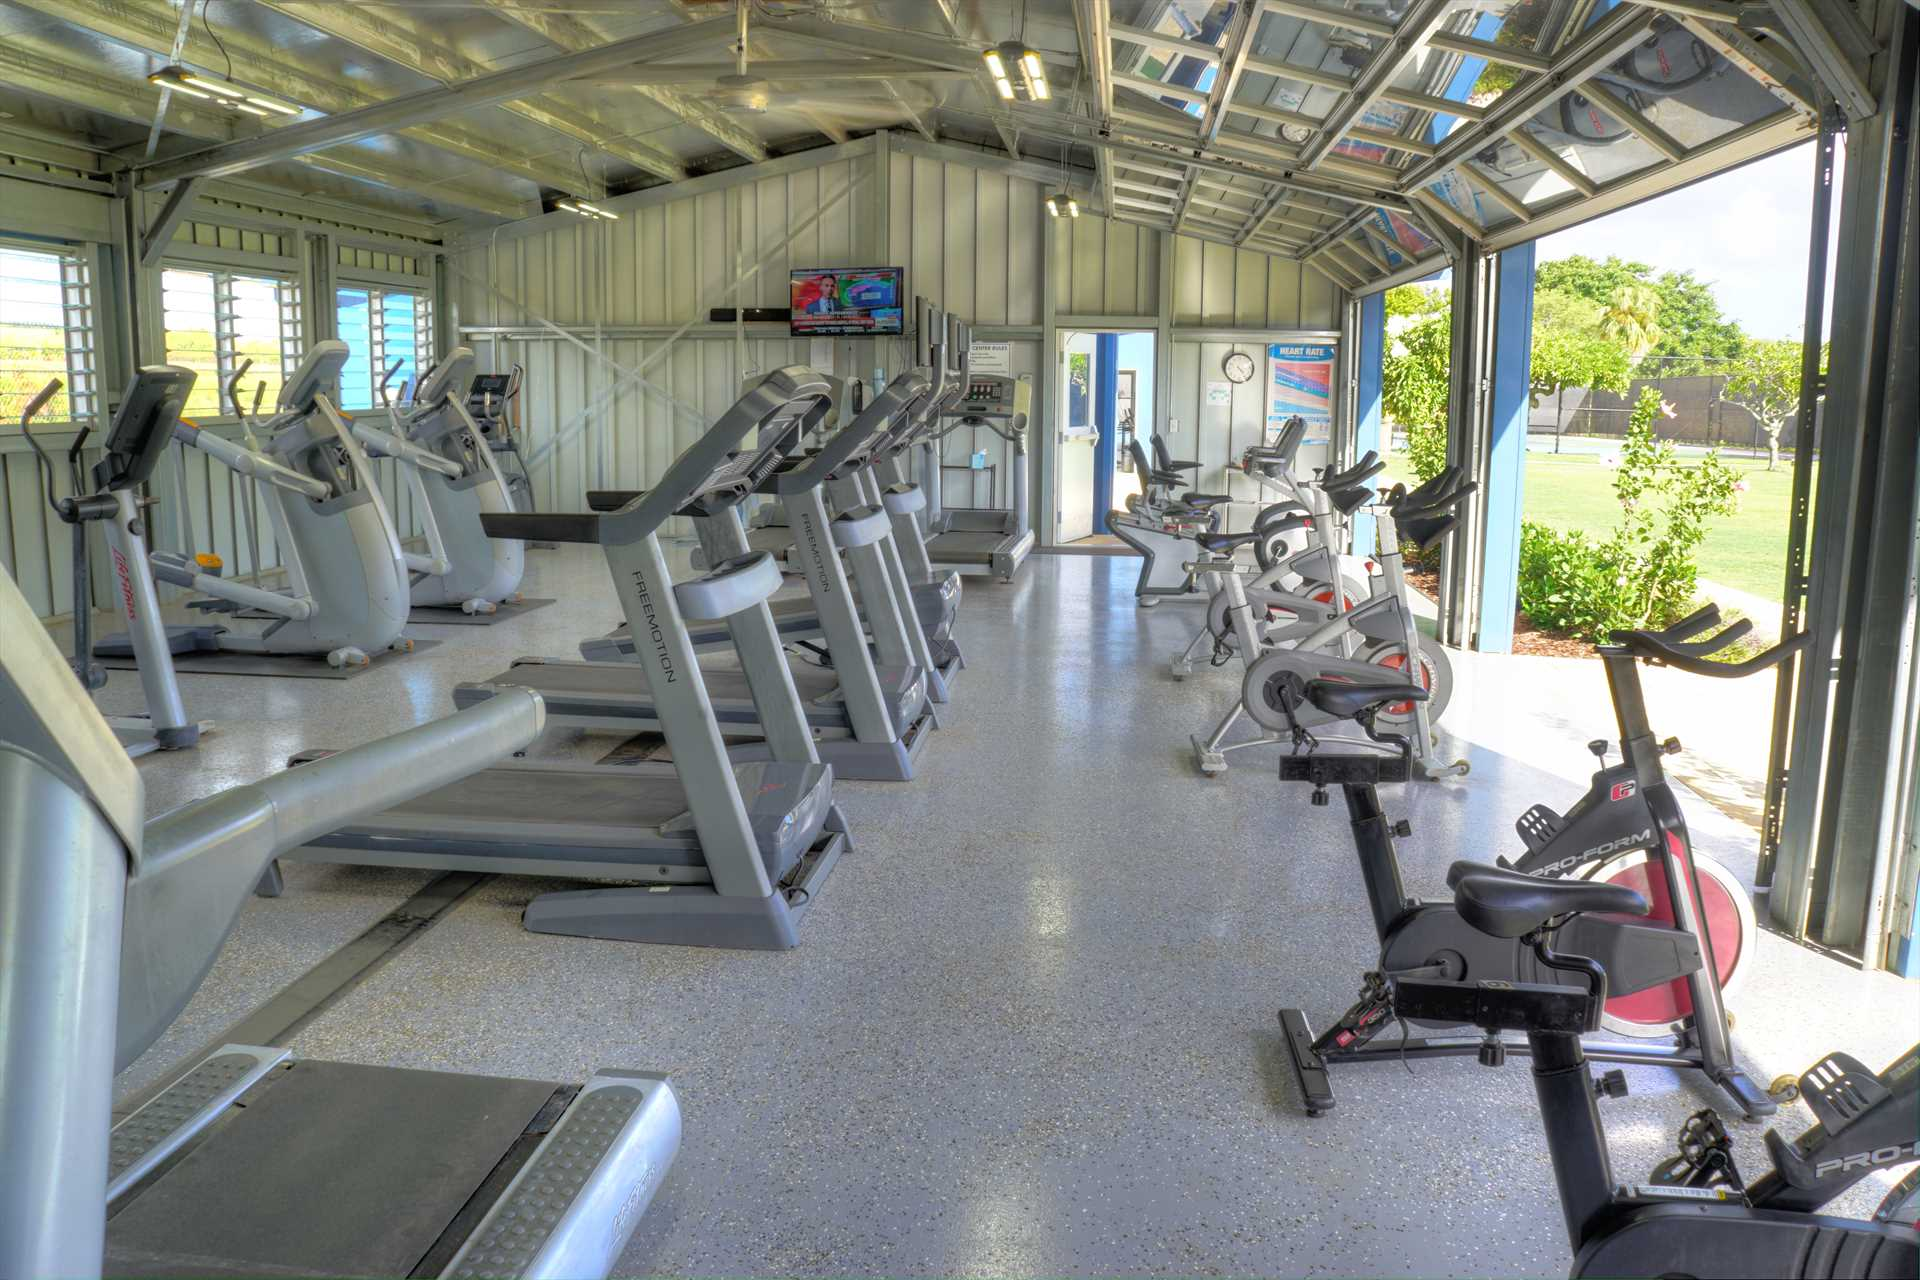 Cardio workout room at Poipu Club, included with reservation